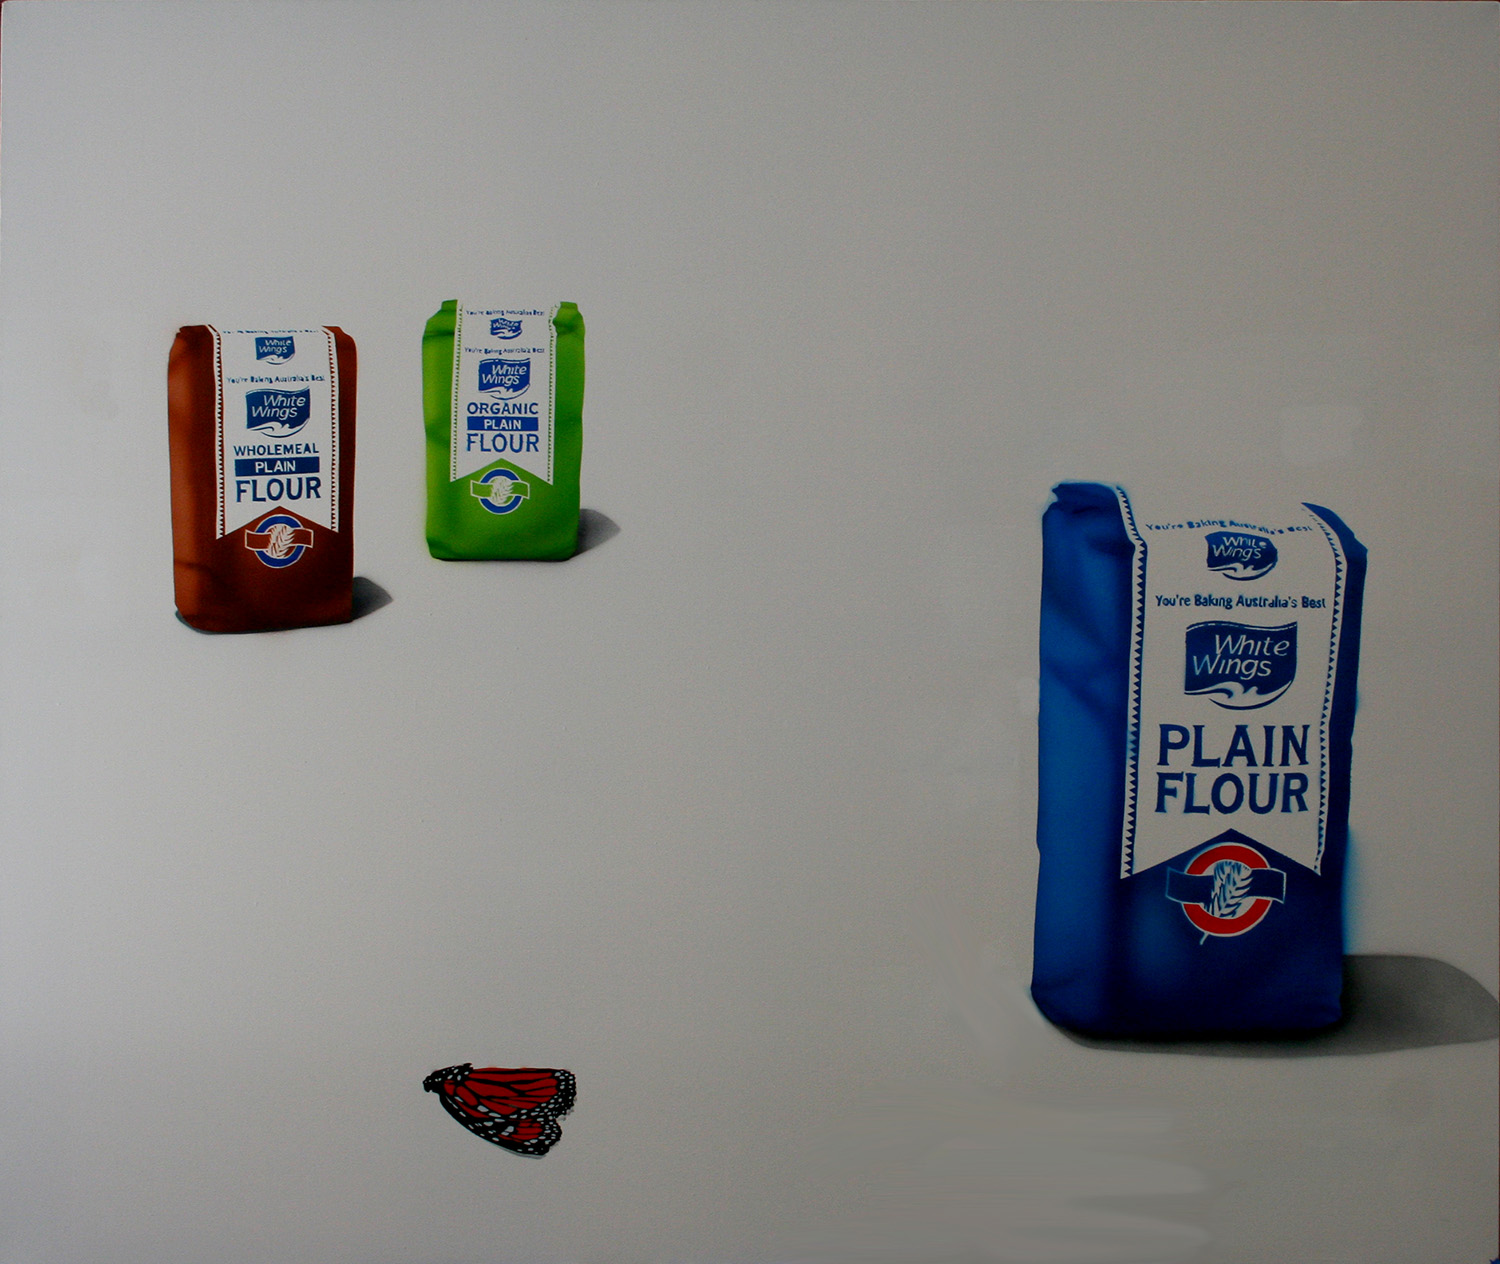 1500-still life with flours.jpg